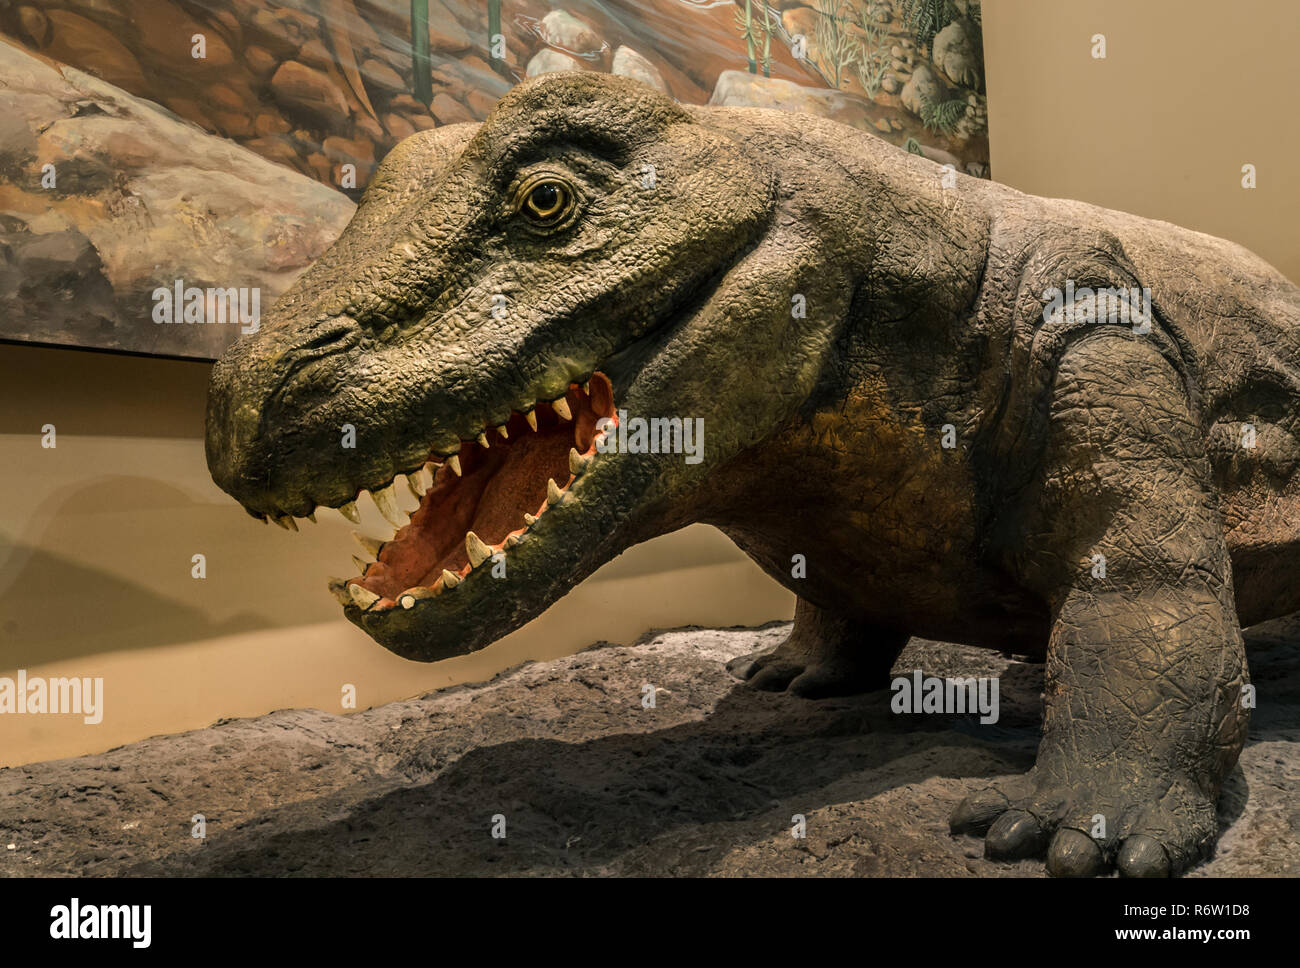 A dinosaur is displayed in the dinosaur gallery at Fernbank Museum of Natural History, May 23, 2014, in Atlanta, Georgia. - Stock Image